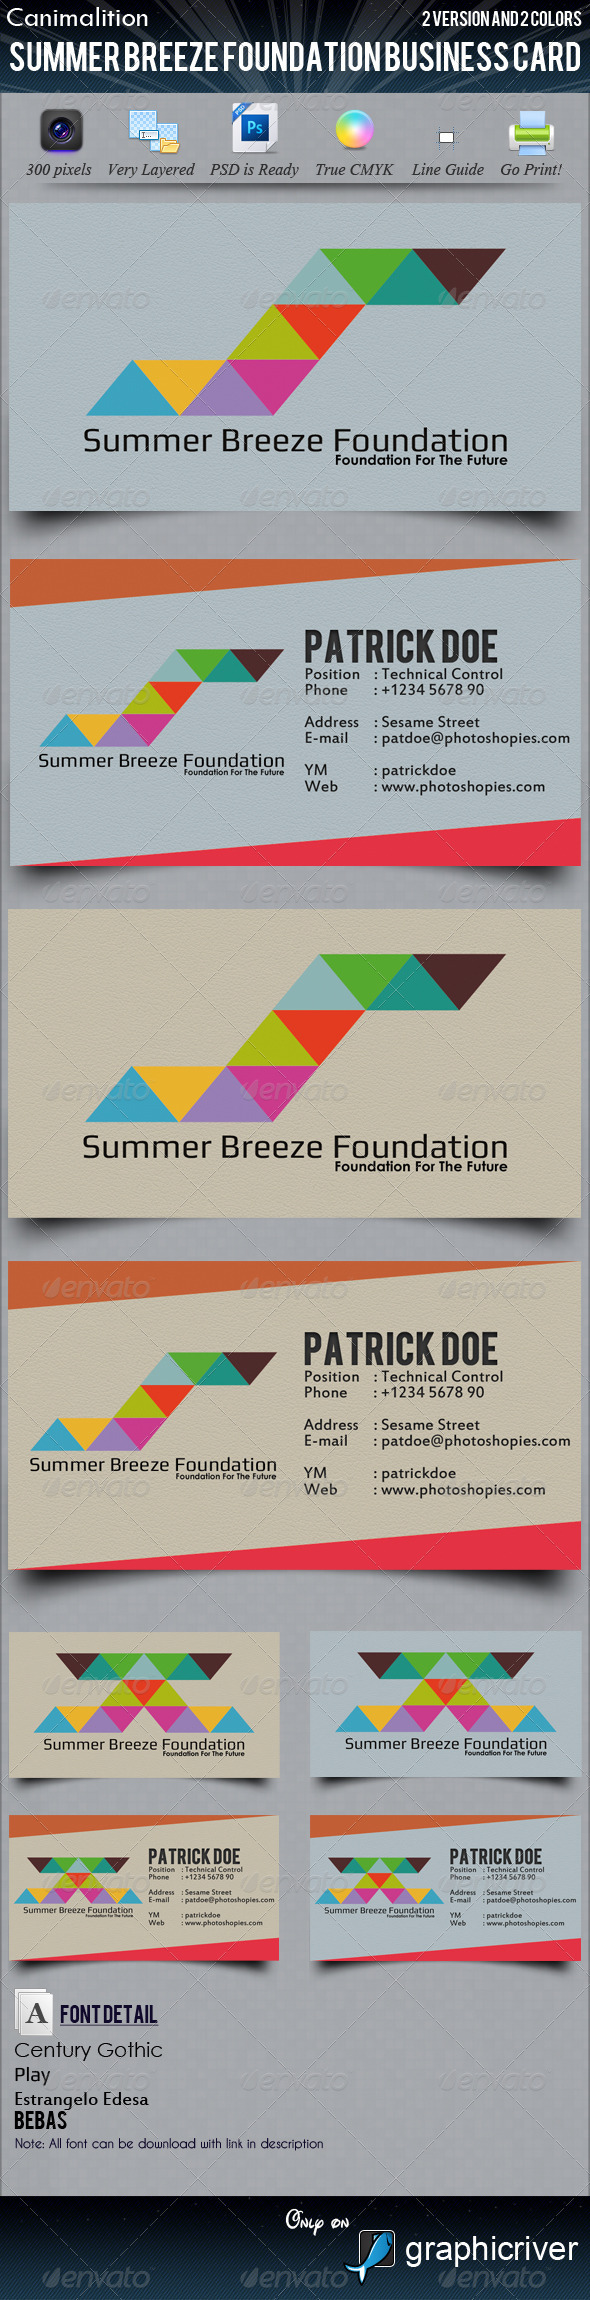 Summer Breeze Foundation Business Cards - Corporate Business Cards